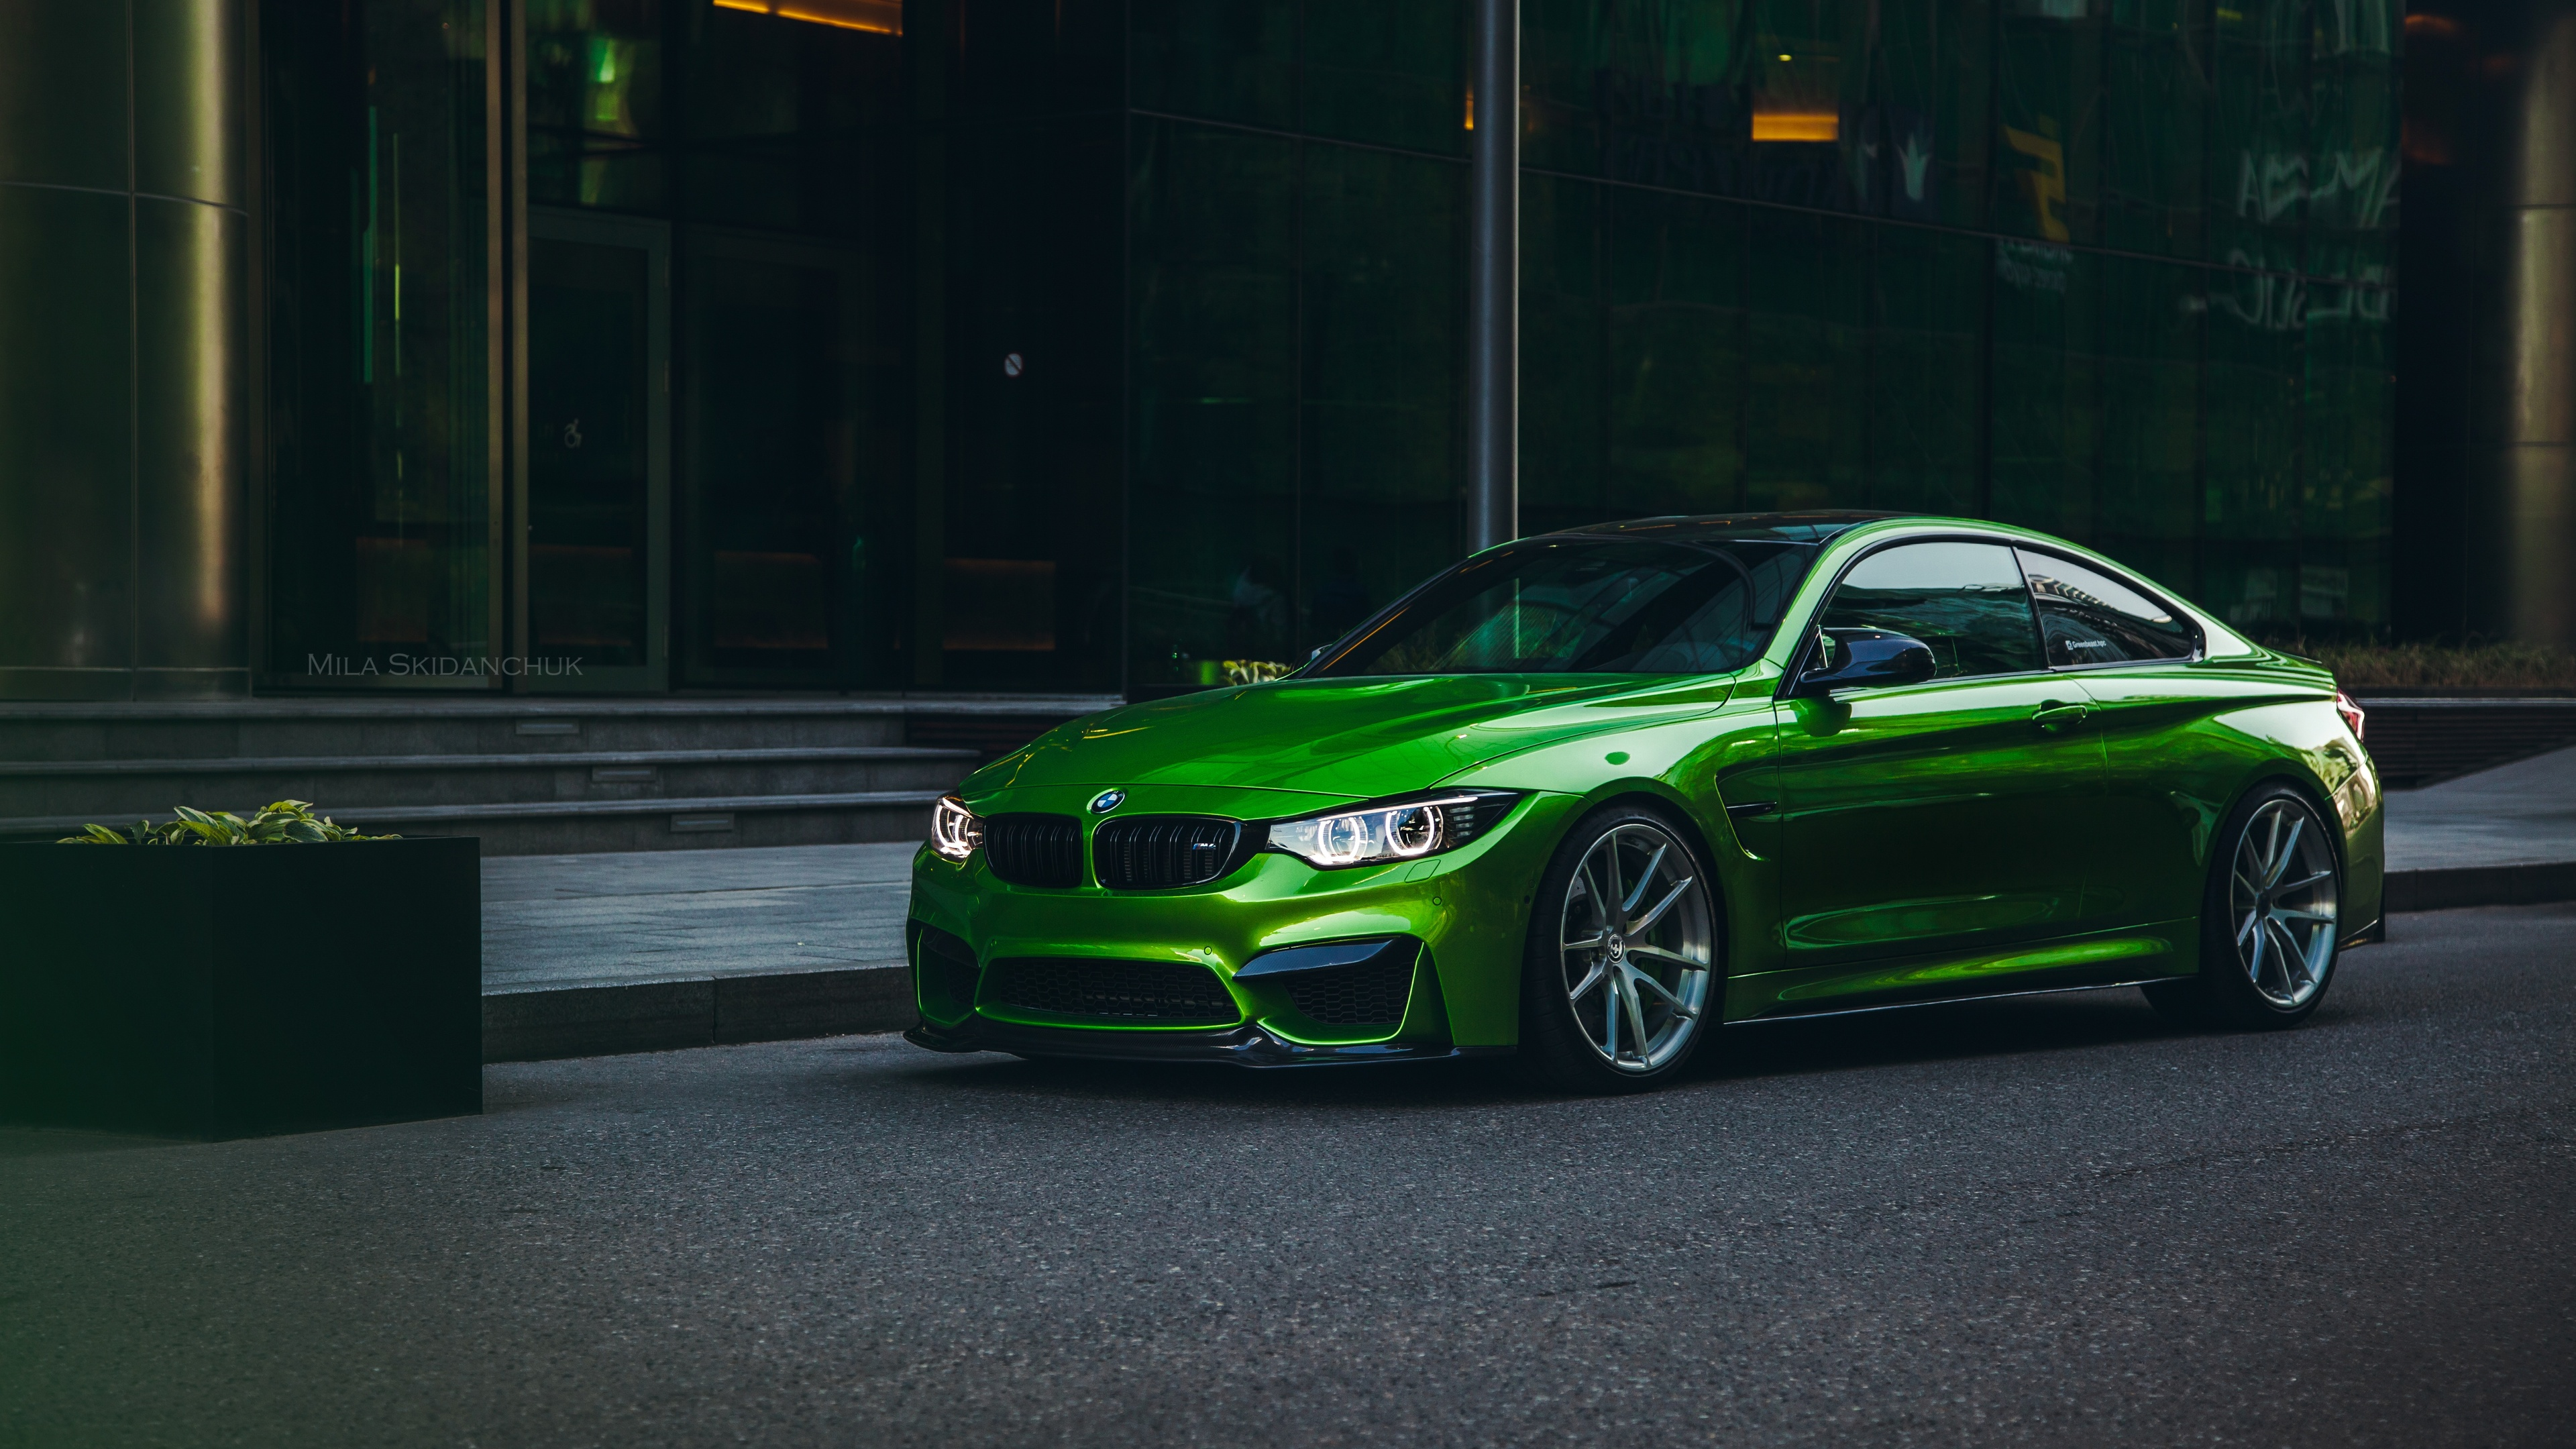 3840x2160 Bmw M4 Green 5k 4k HD 4k Wallpapers, Images ...